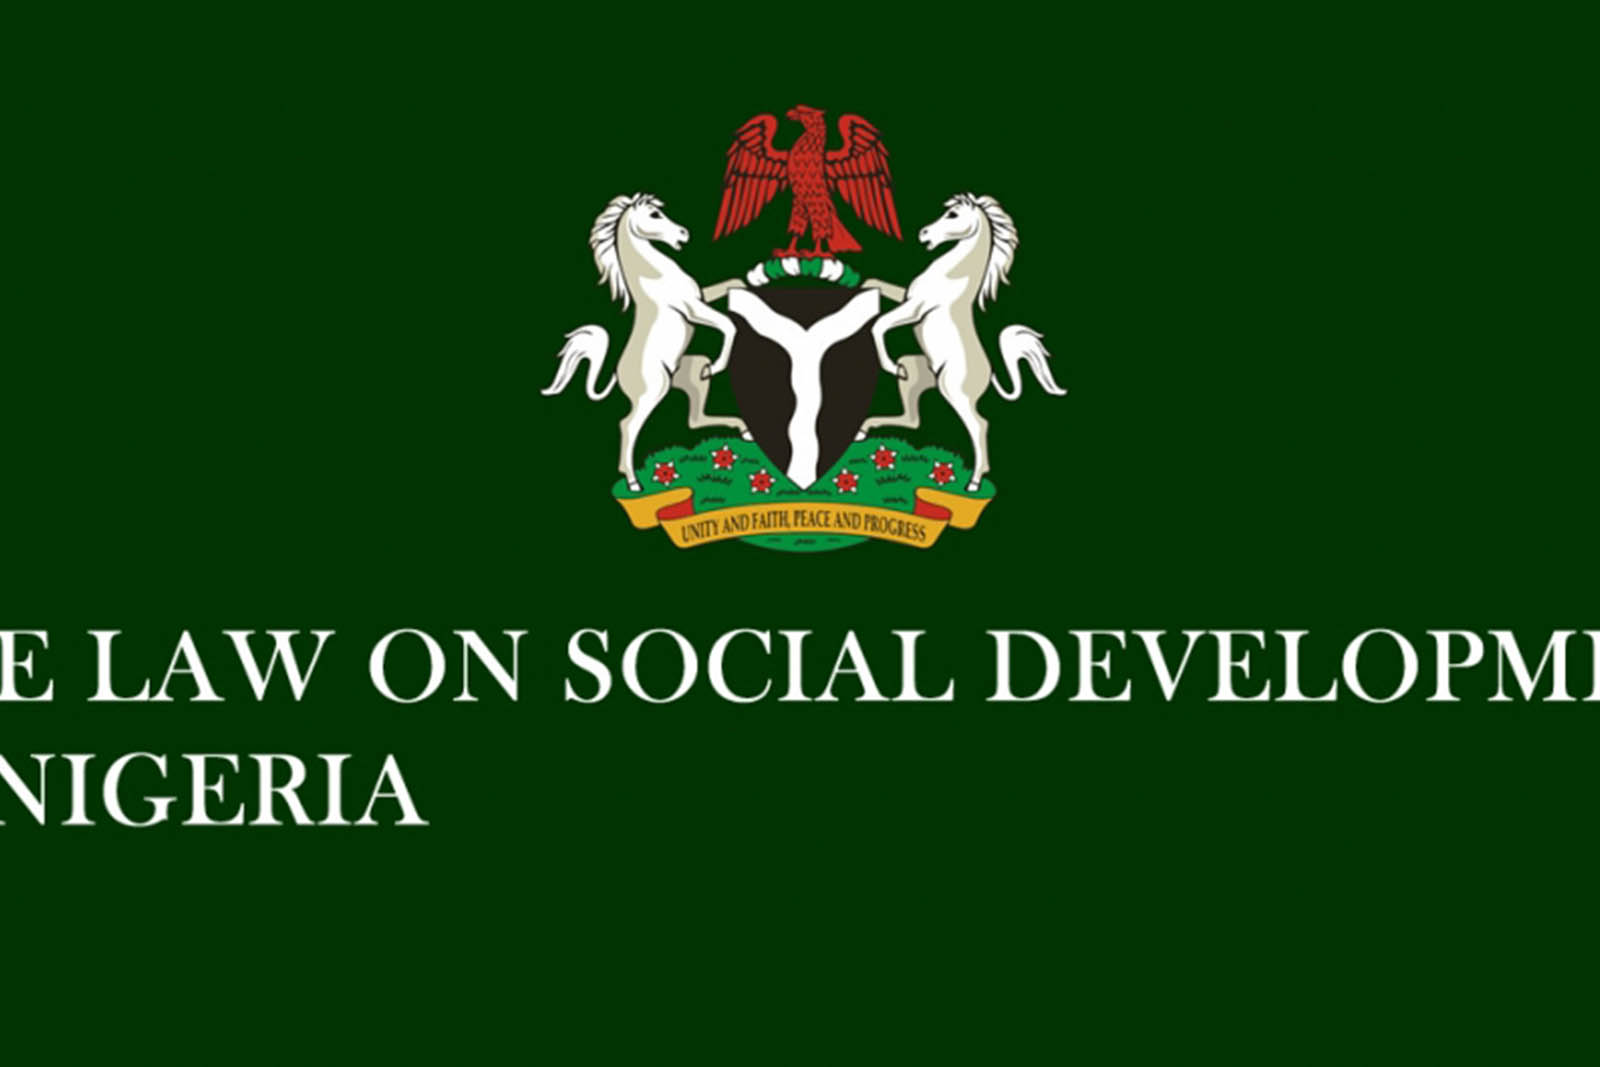 SOCIAL DEVELOPMENT IN NIGERIA